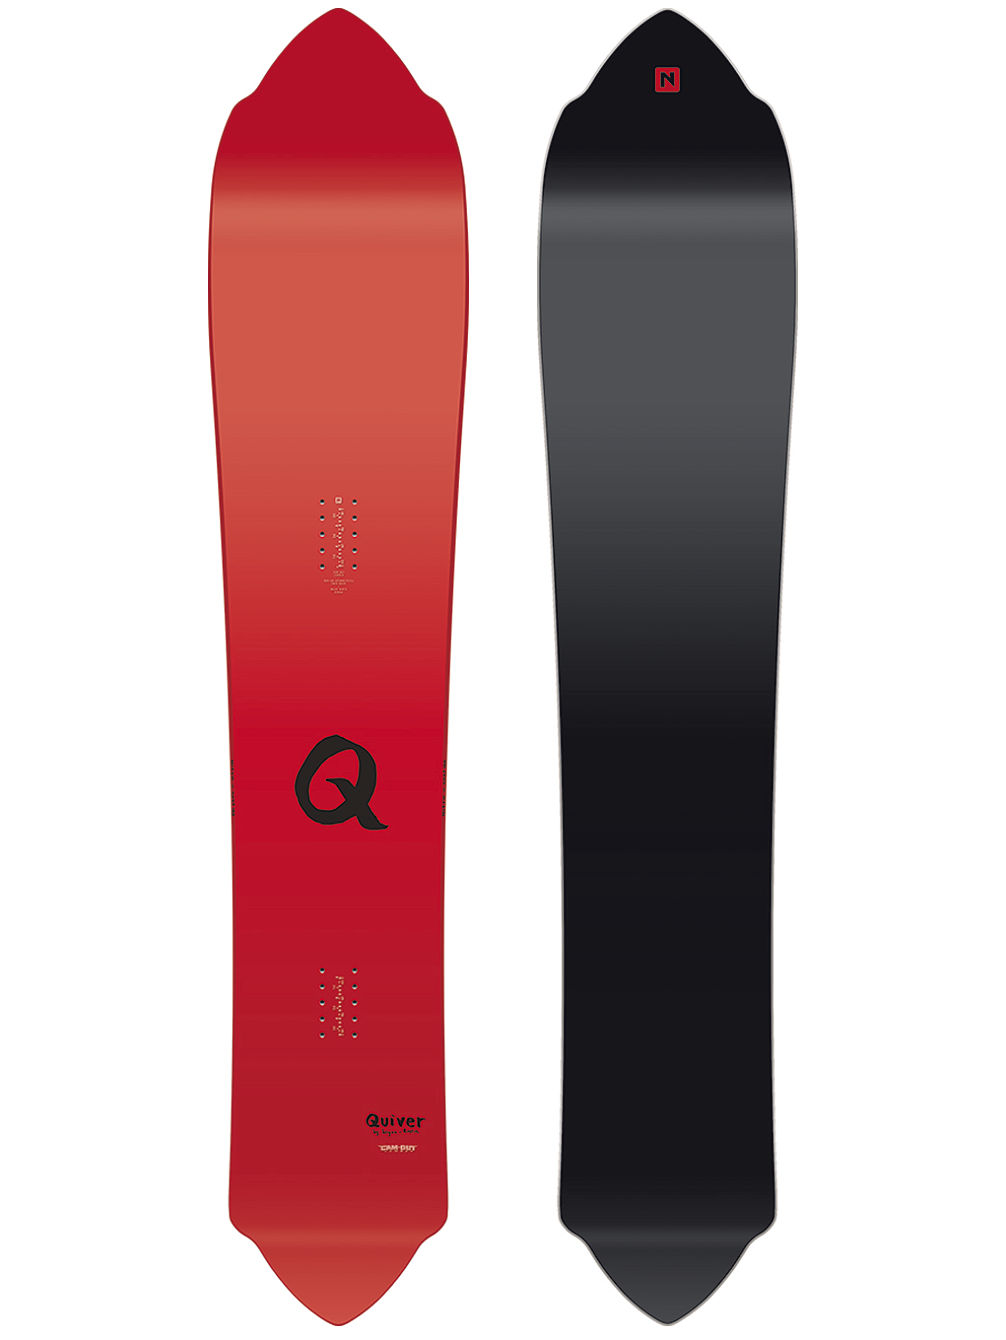 The Quiver Nuat 163 2018